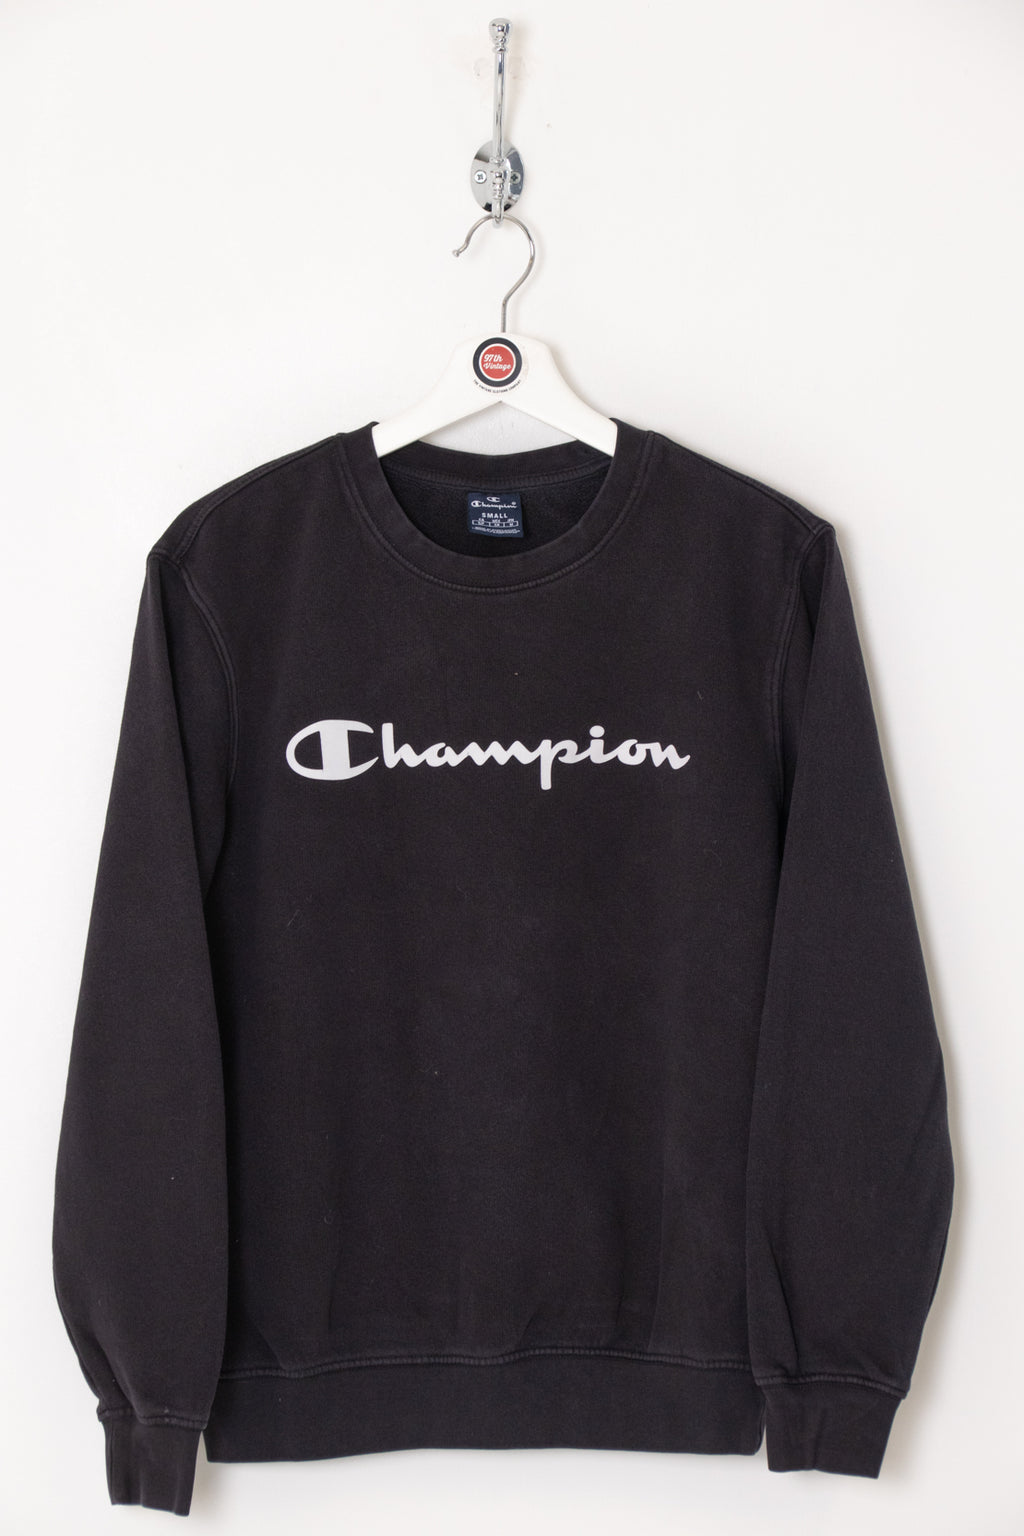 Women's Champion Sweatshirt (S)